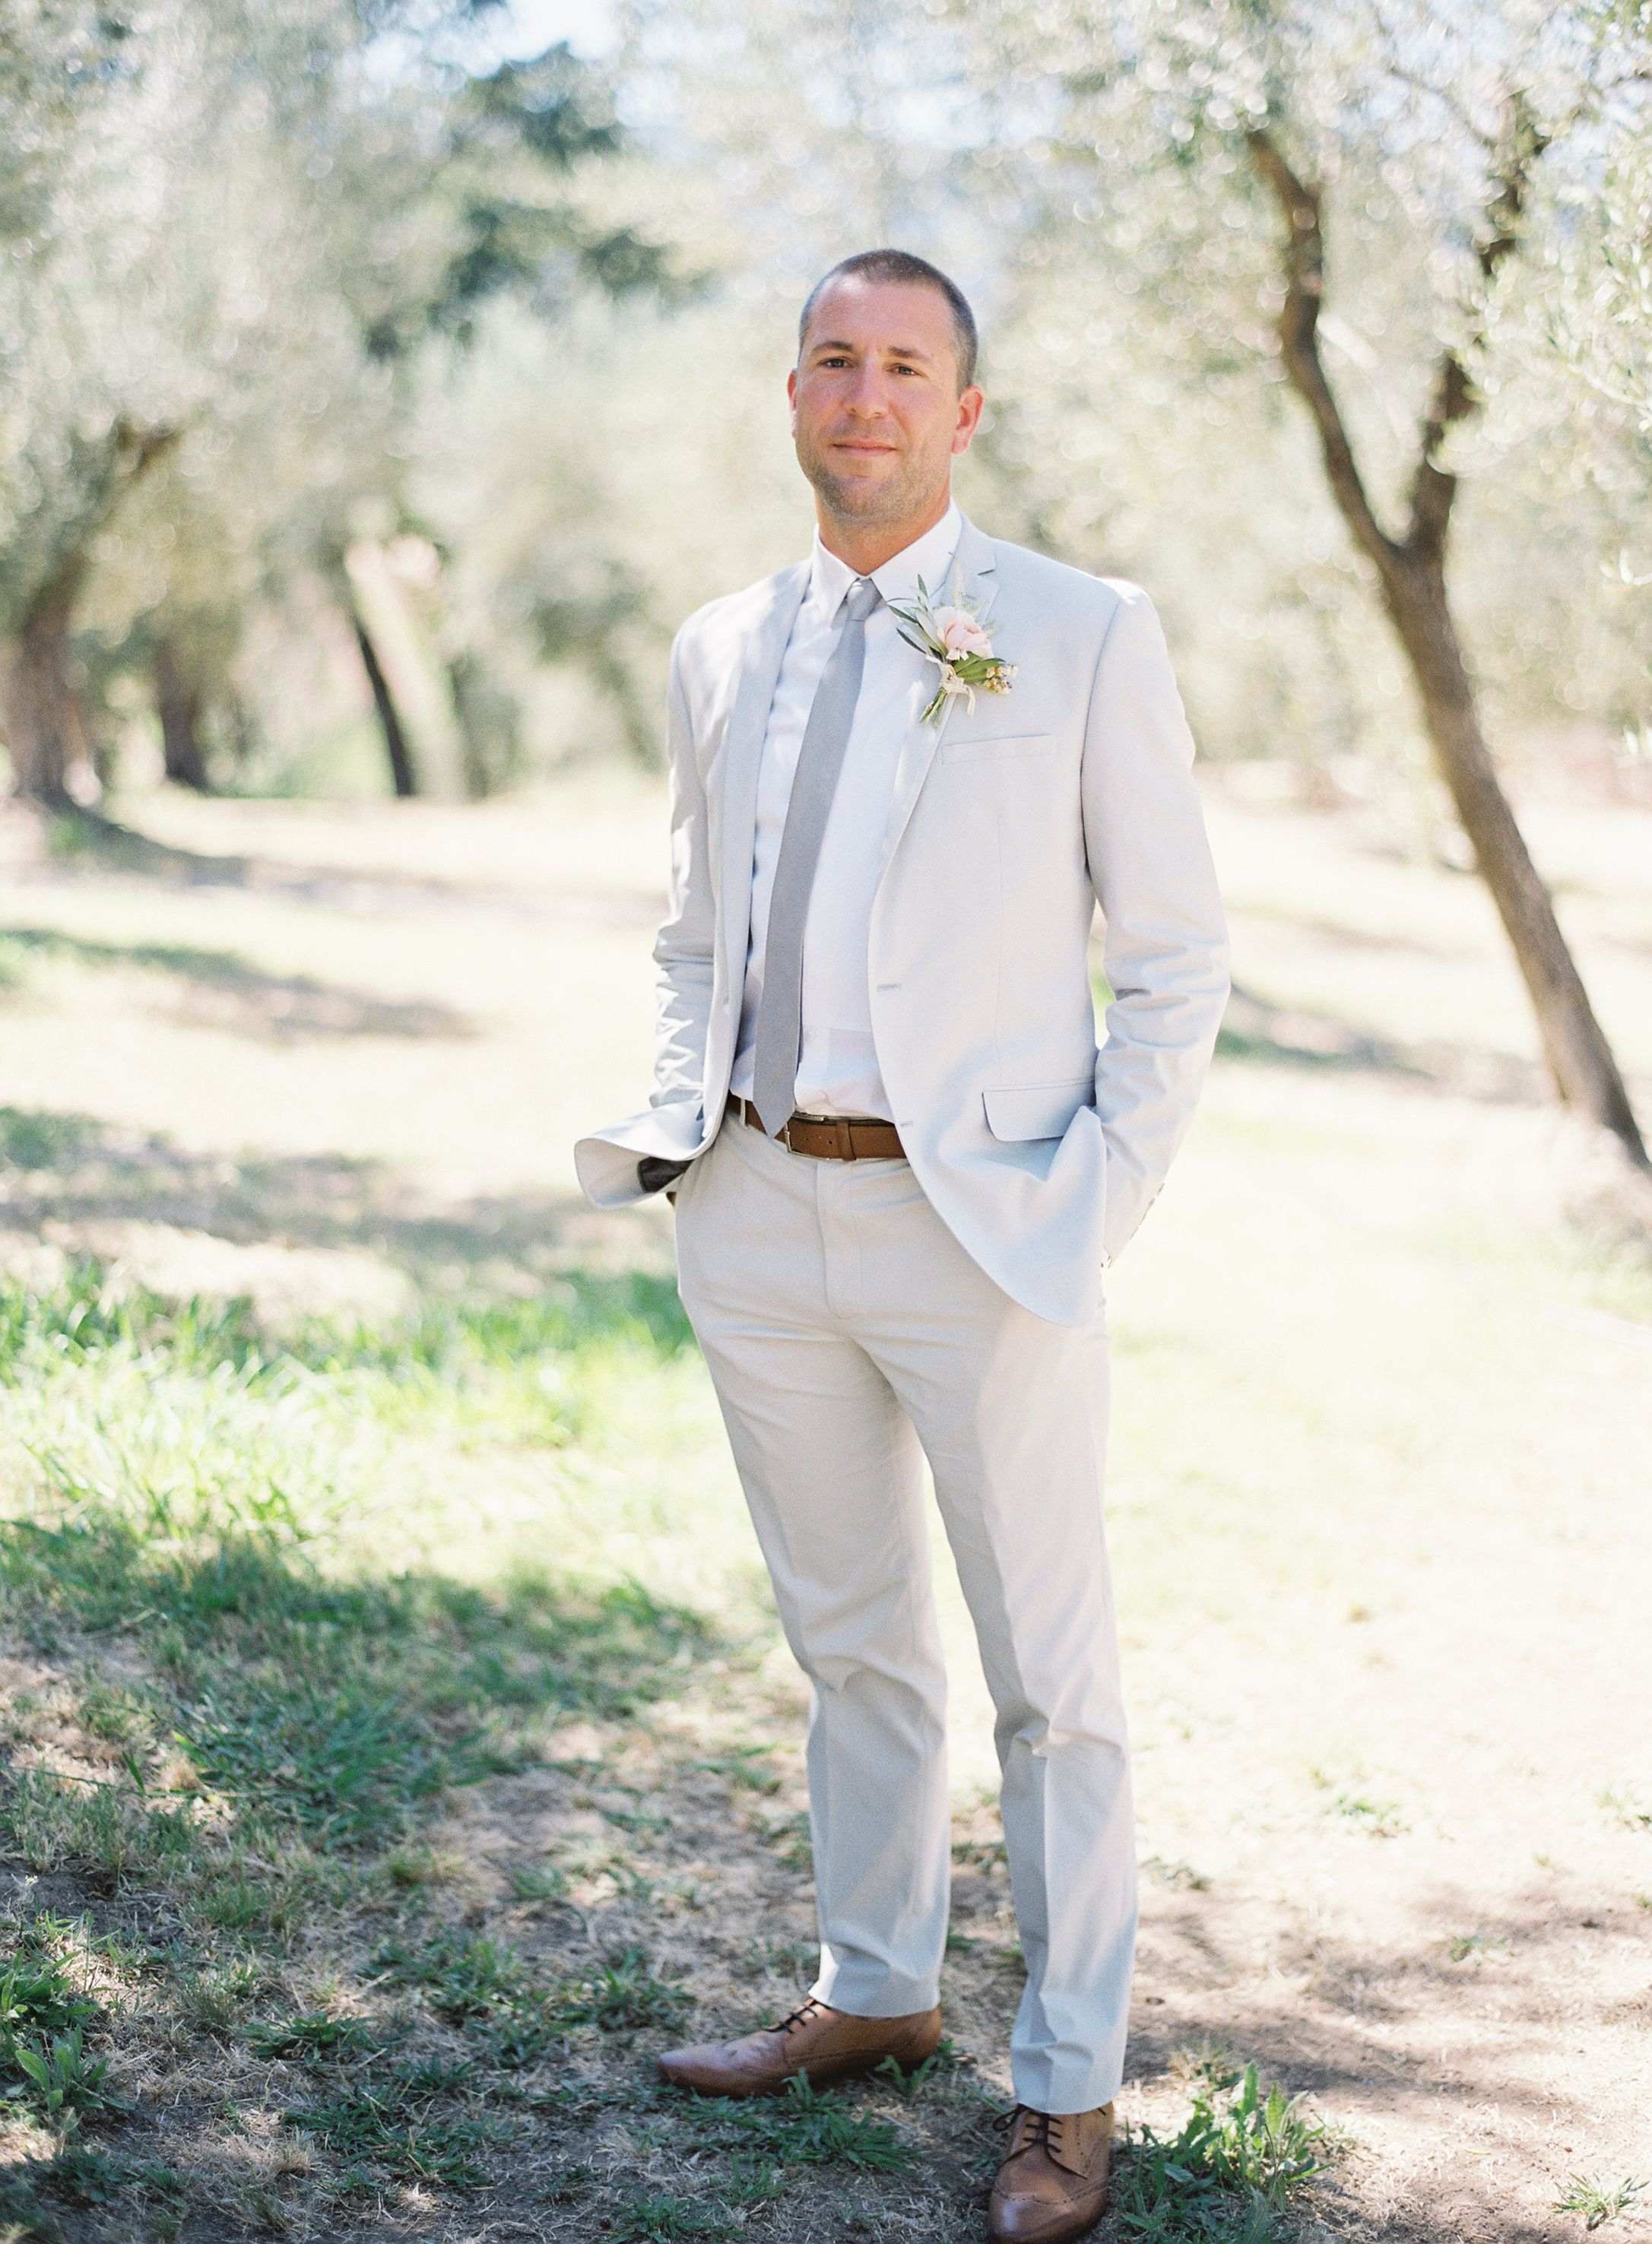 Summer Vineyard Wedding // Groom's Suit // Photo by Rylee Hitchner #winecountry #wedding #vineyardwedding #outdoorwedding #rusticwedding #groomsuit #summerwedding